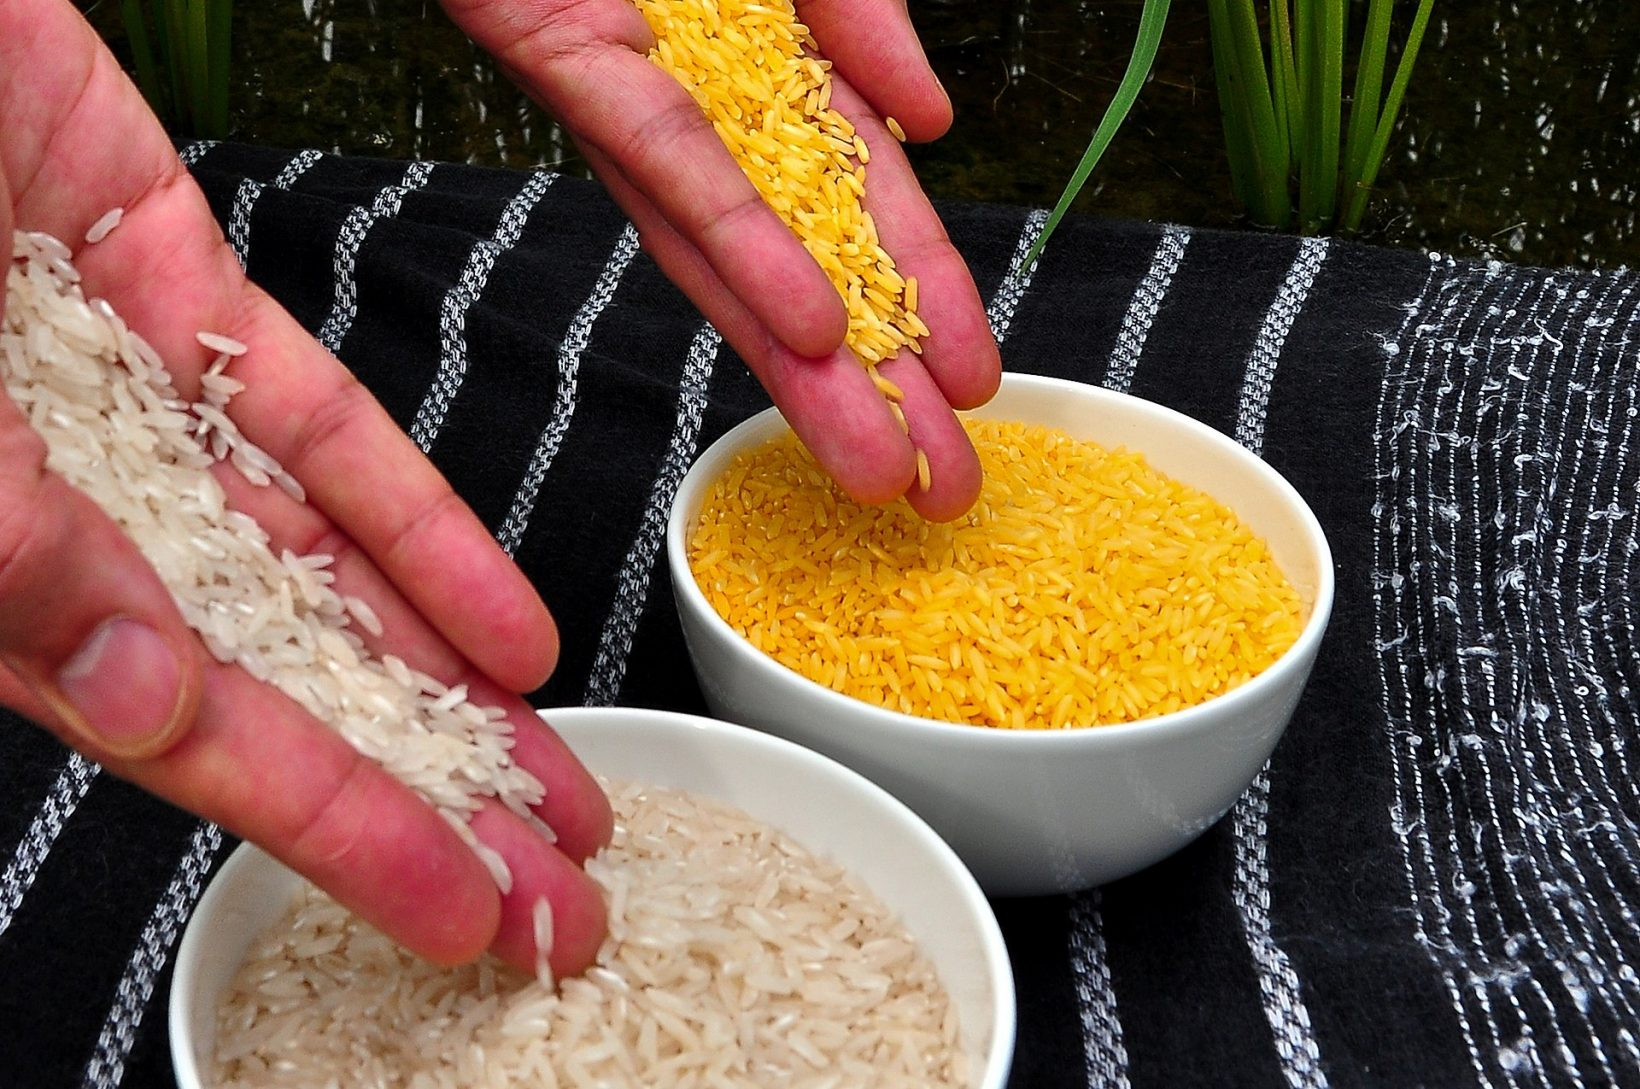 golden-rice-is-allowed-in-the-philippines.-to-whom-and-how-will-this-help?